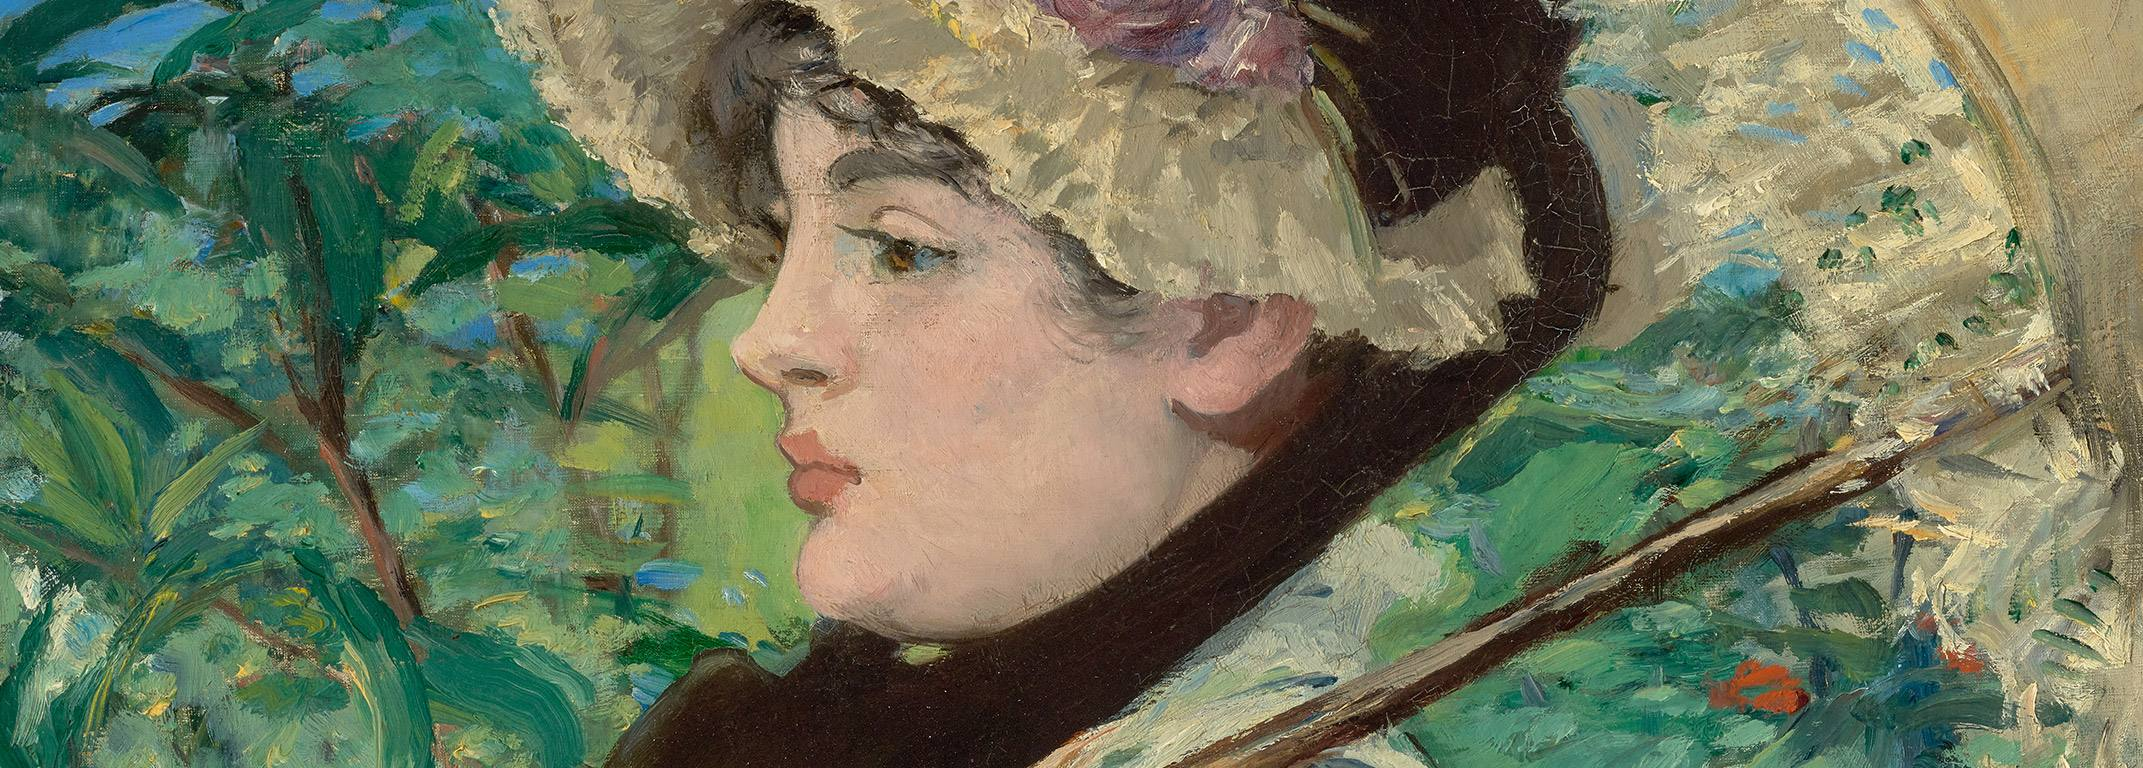 """Jeanne (Spring)"" by Édouard Manet at the Getty Center"